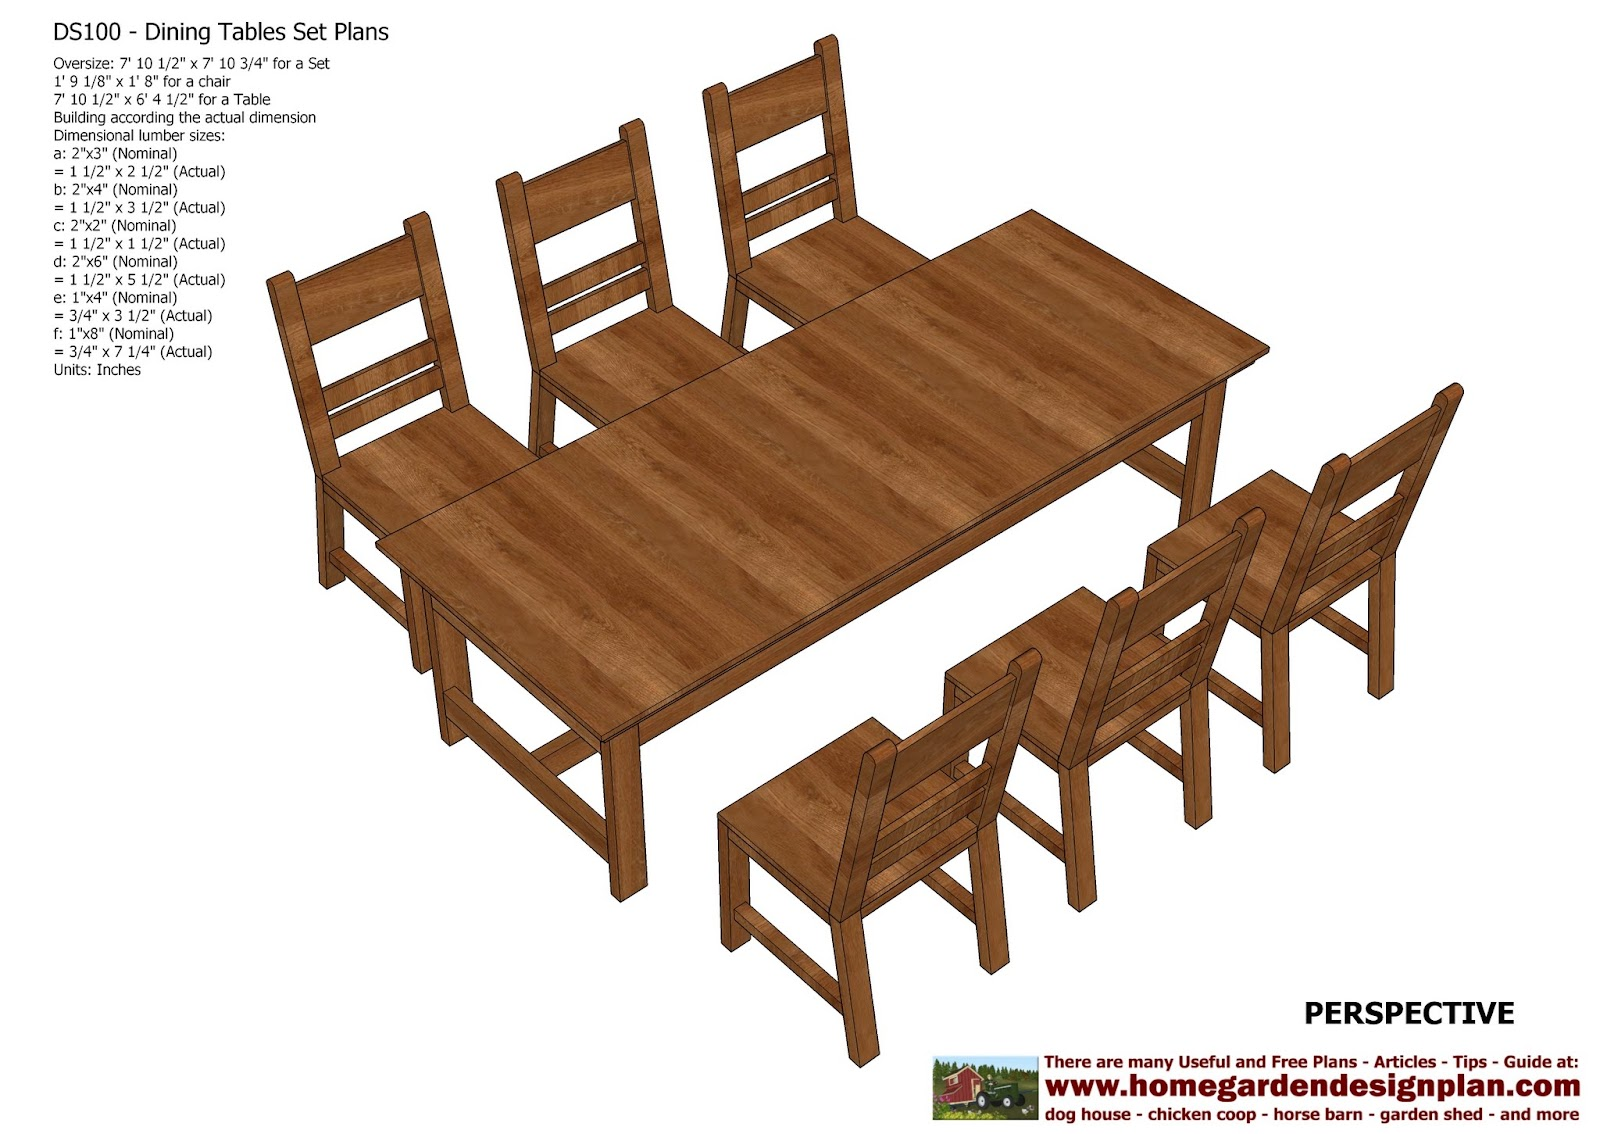 Home garden plans ds dining table set